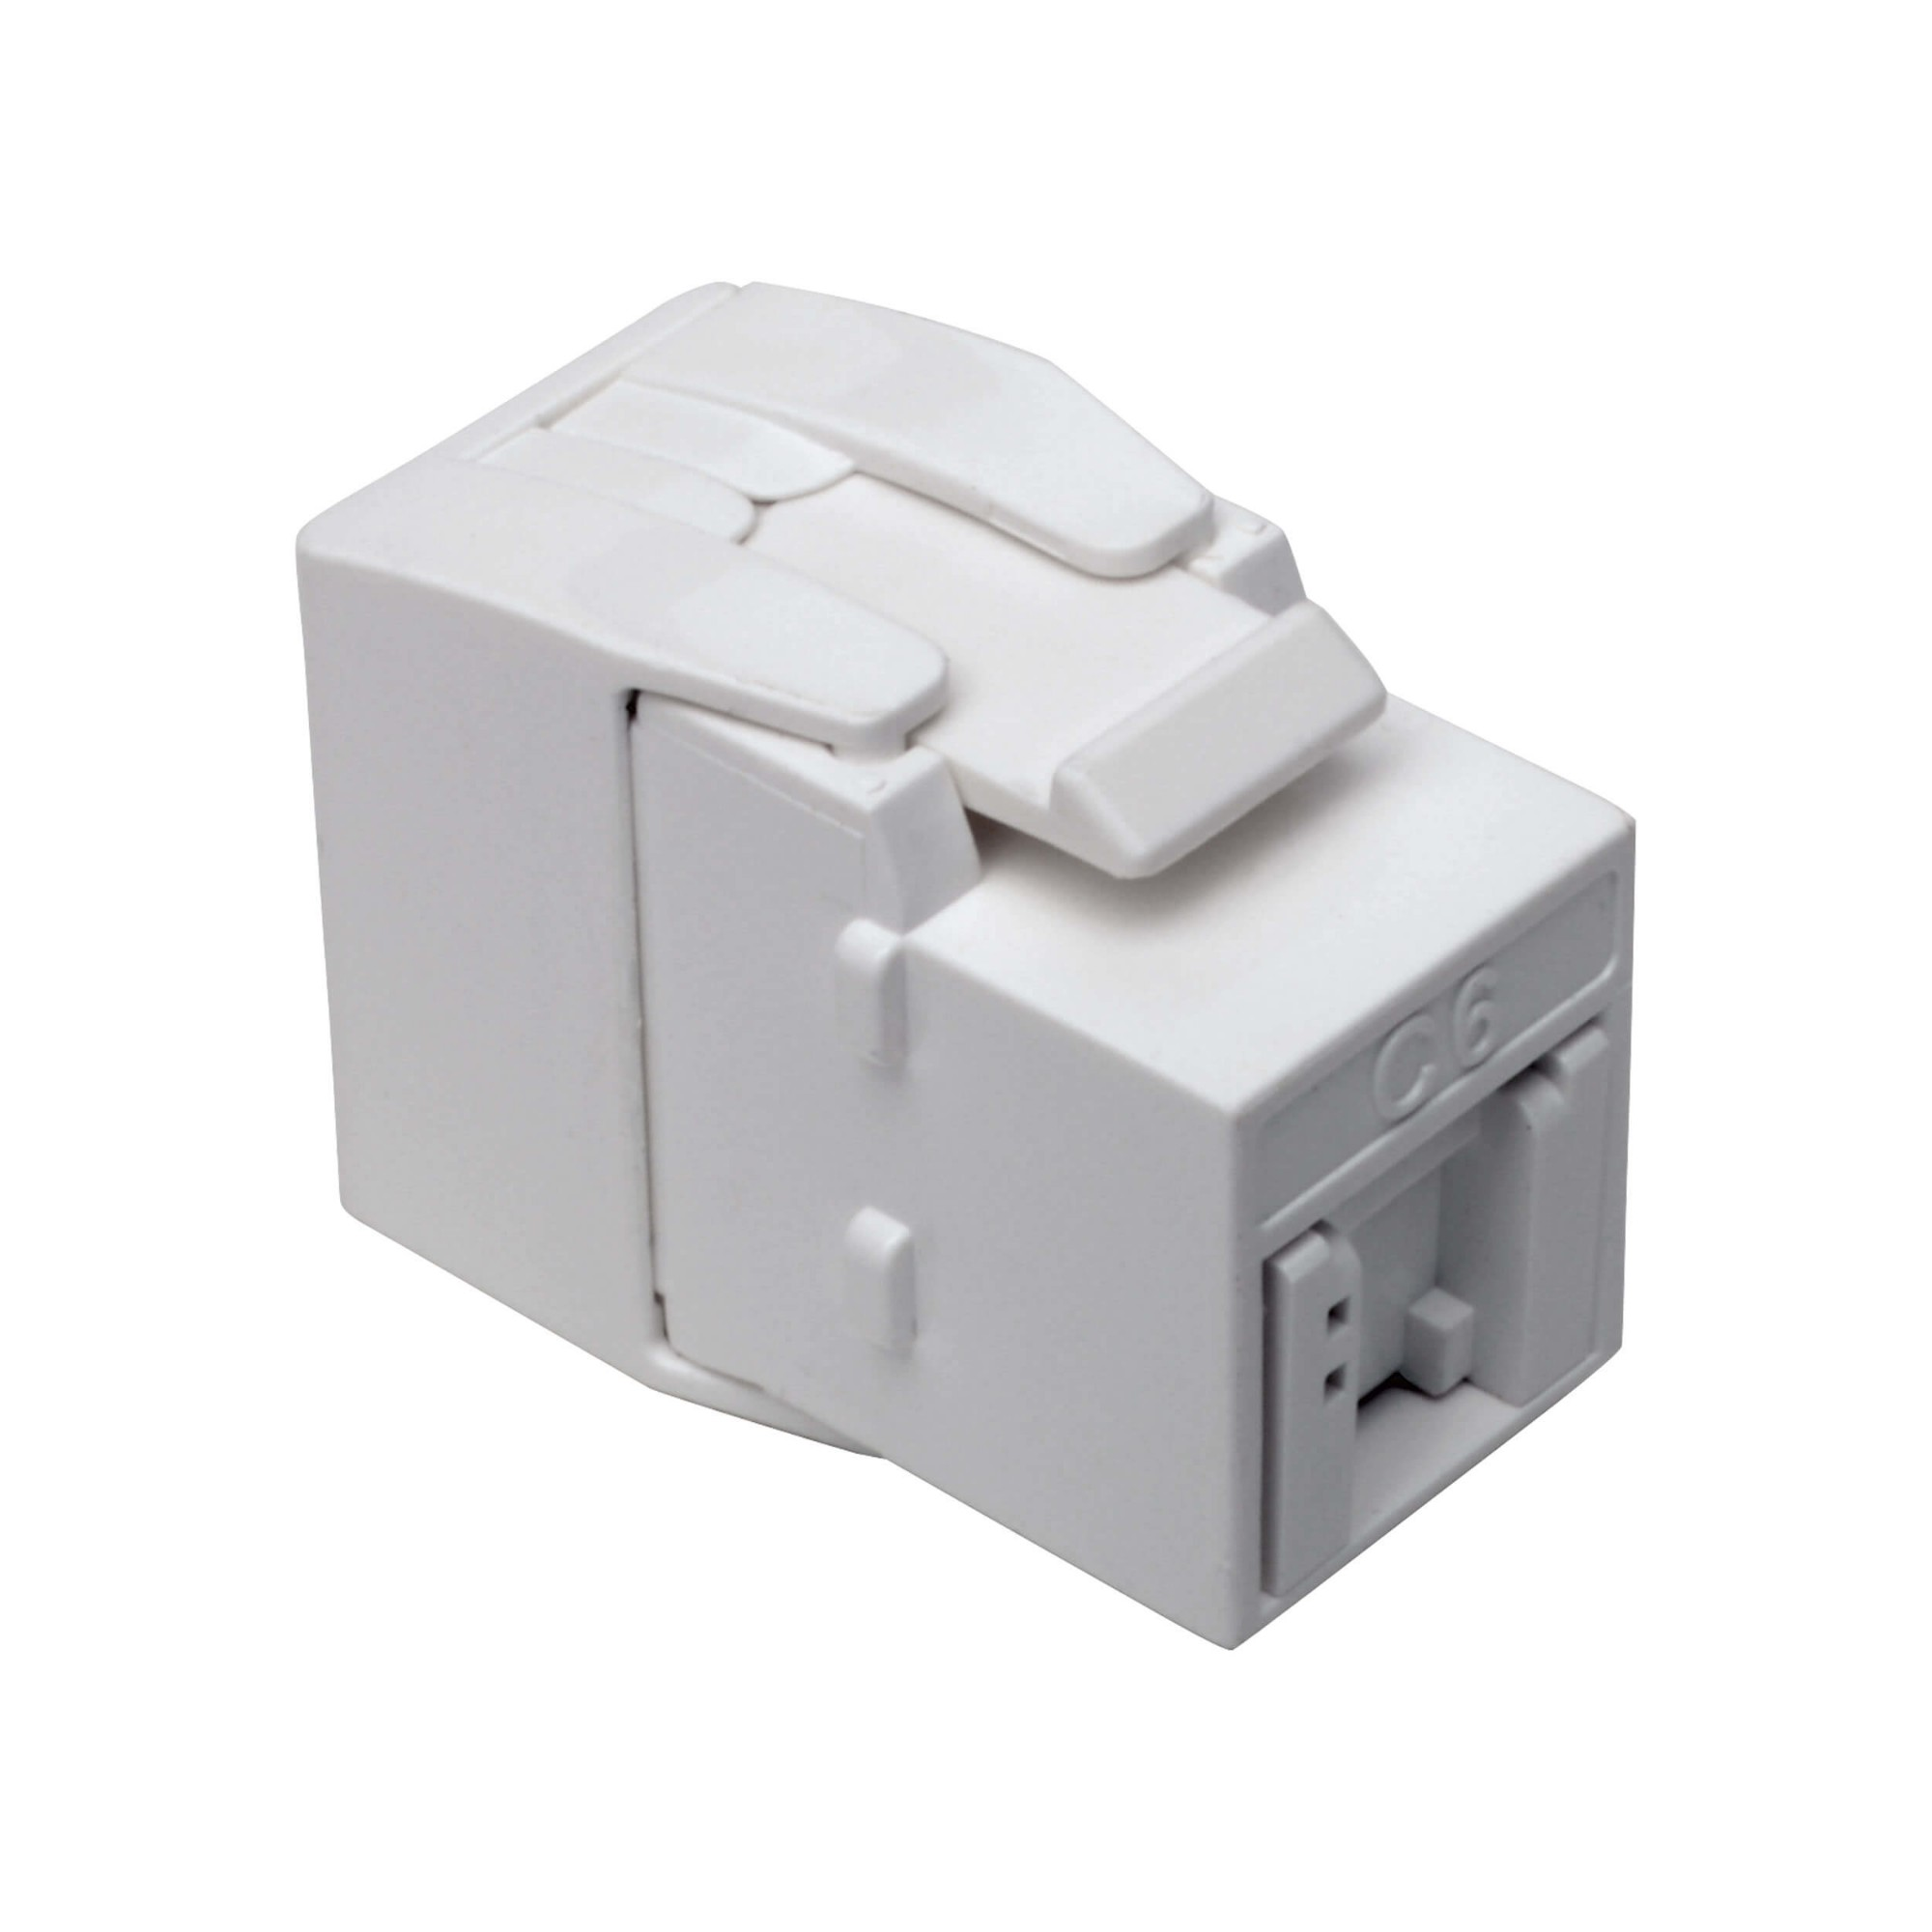 Tripp Lite Keystone Jack Cat6a/Cat6/Cat5e, RJ45, Shuttered, Dust Cap - Toolless, PoE/PoE+ Compliant, White